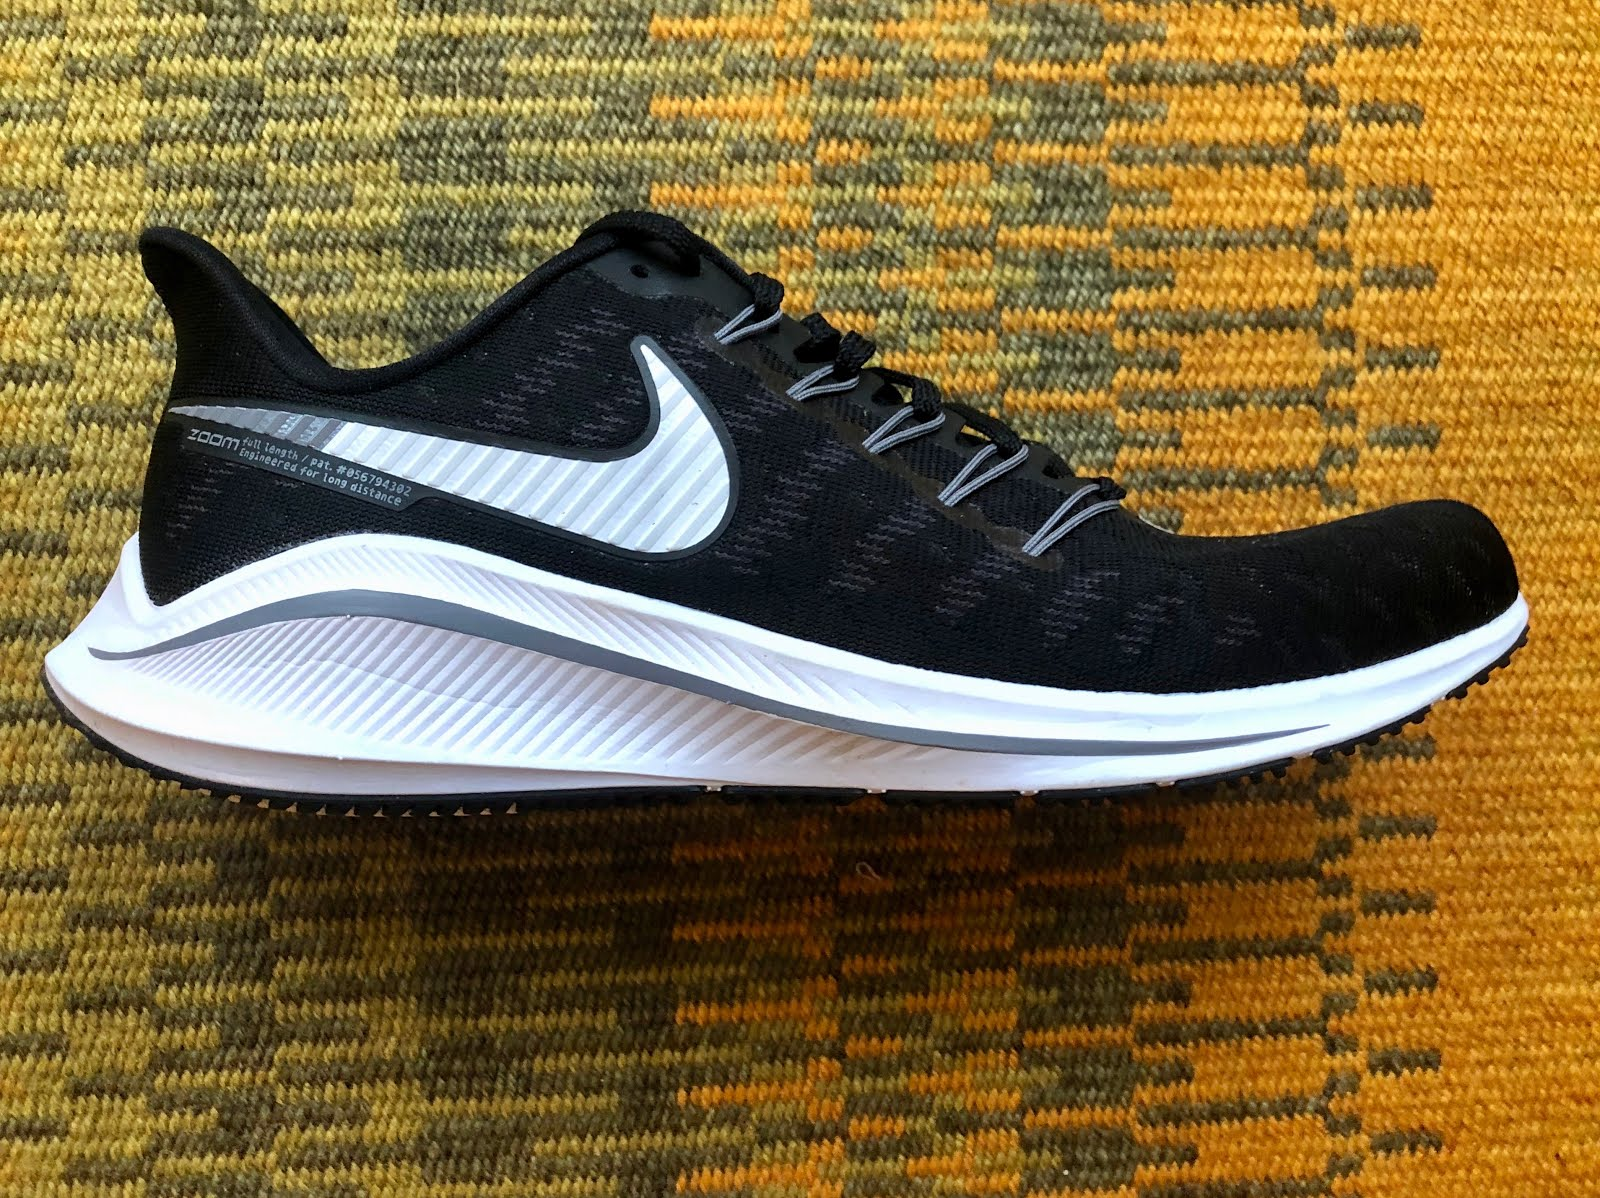 c3426254a48 Nike Zoom Vomero 14 Review  Fast and Responsive Heavy Duty Run Trainer!